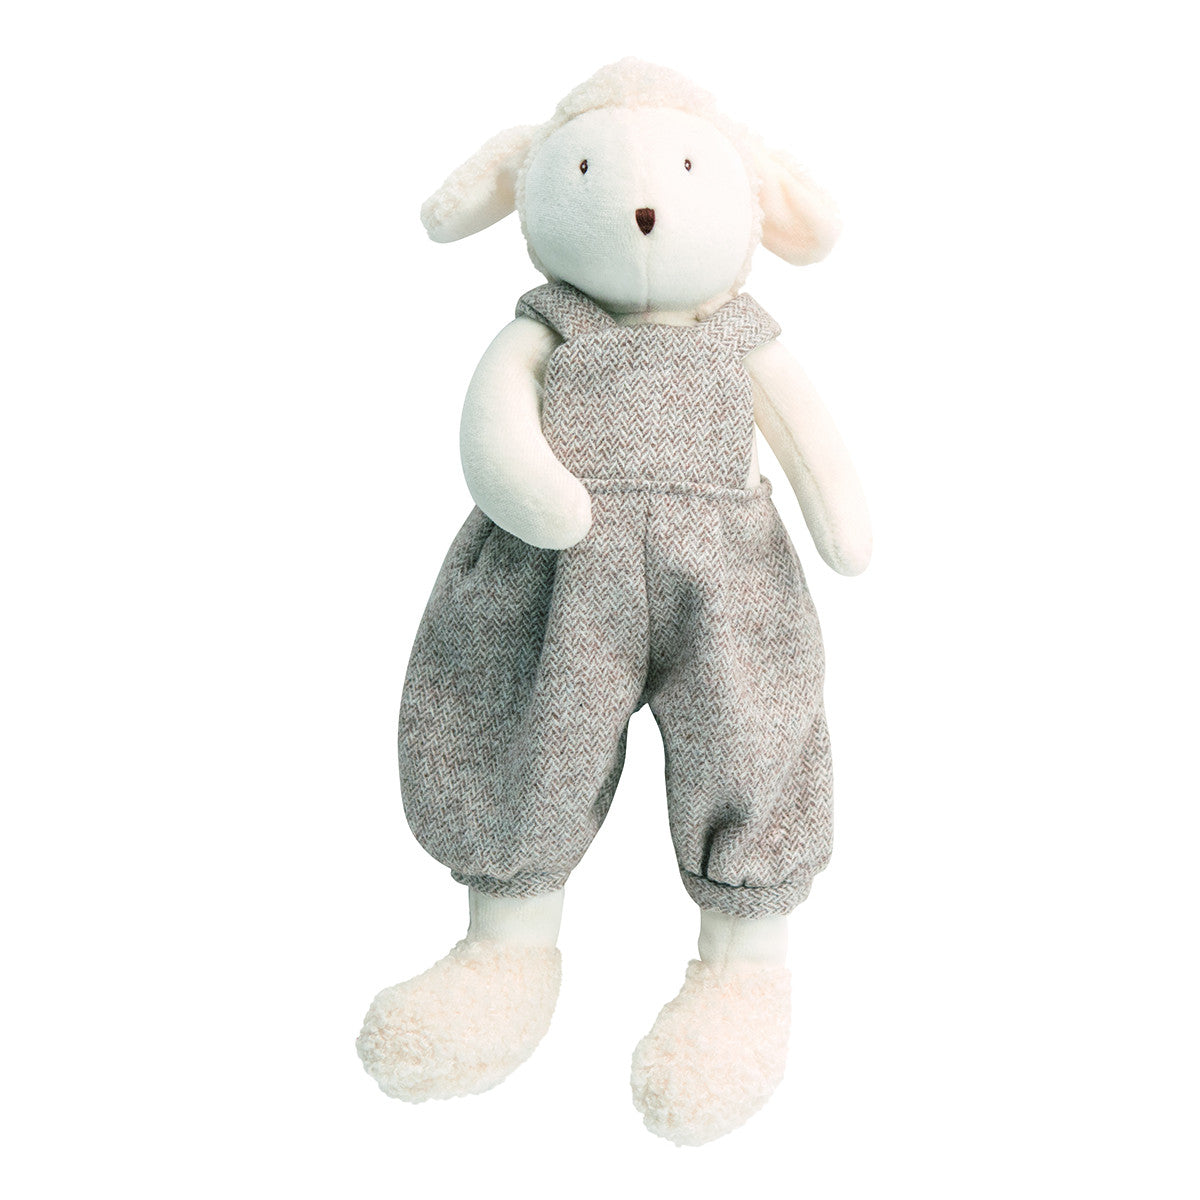 Little Albert Sheep Plush Toy by Moulin Roty - Little Citizens Boutique